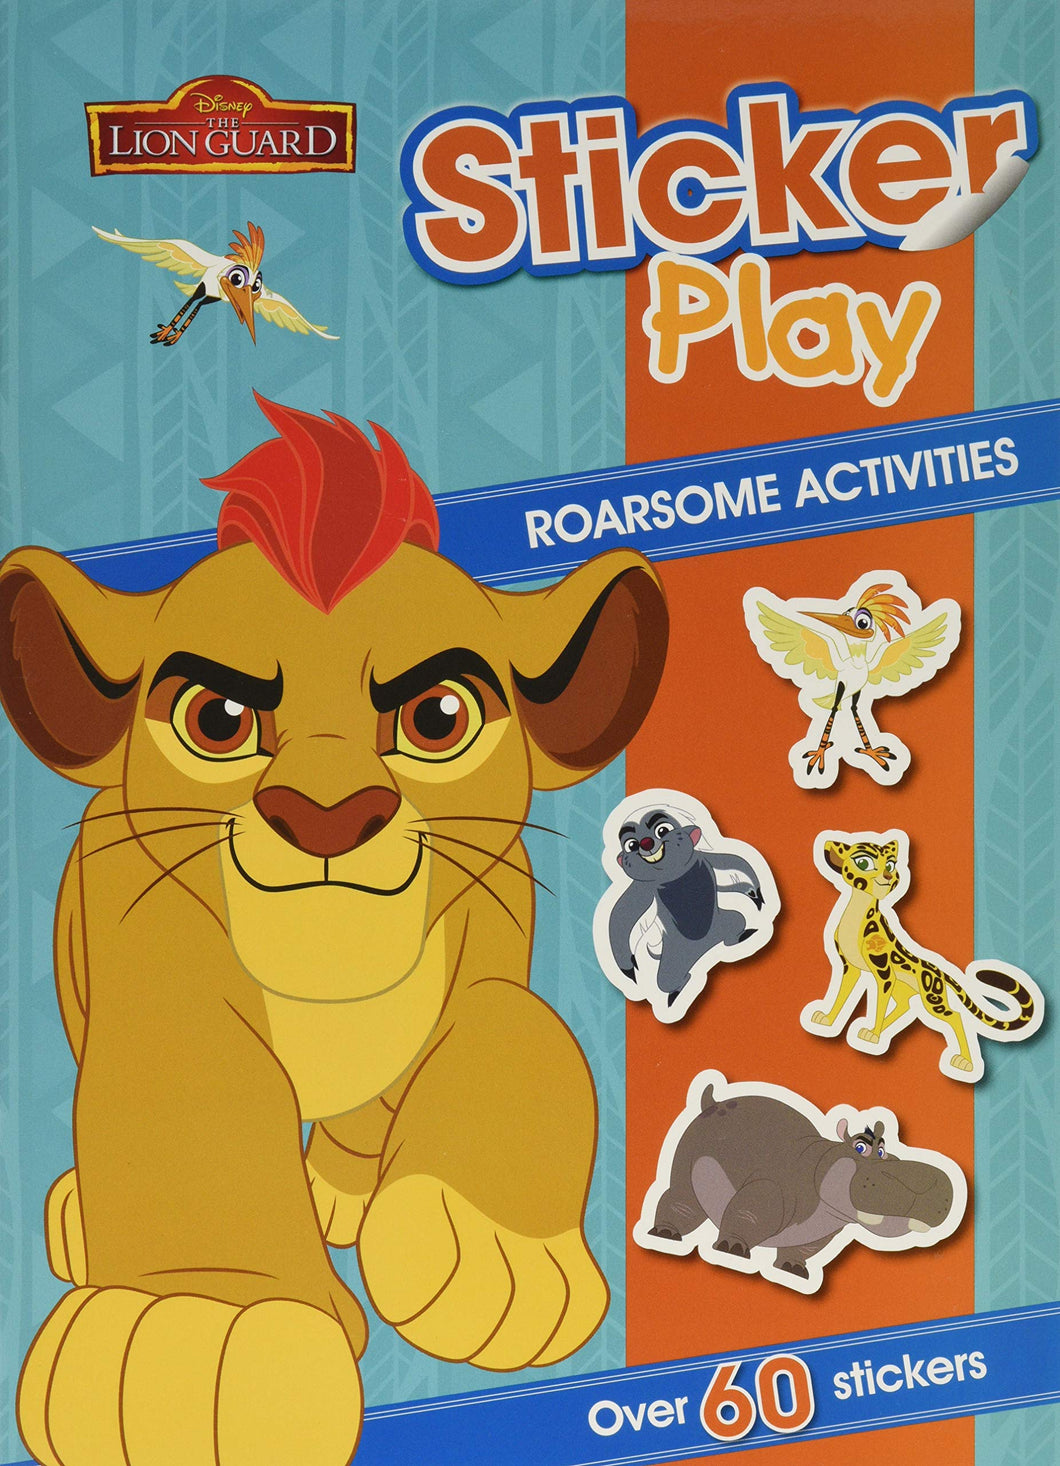 Disney Sticker Play: The Lion Guard's Roarsome Activities